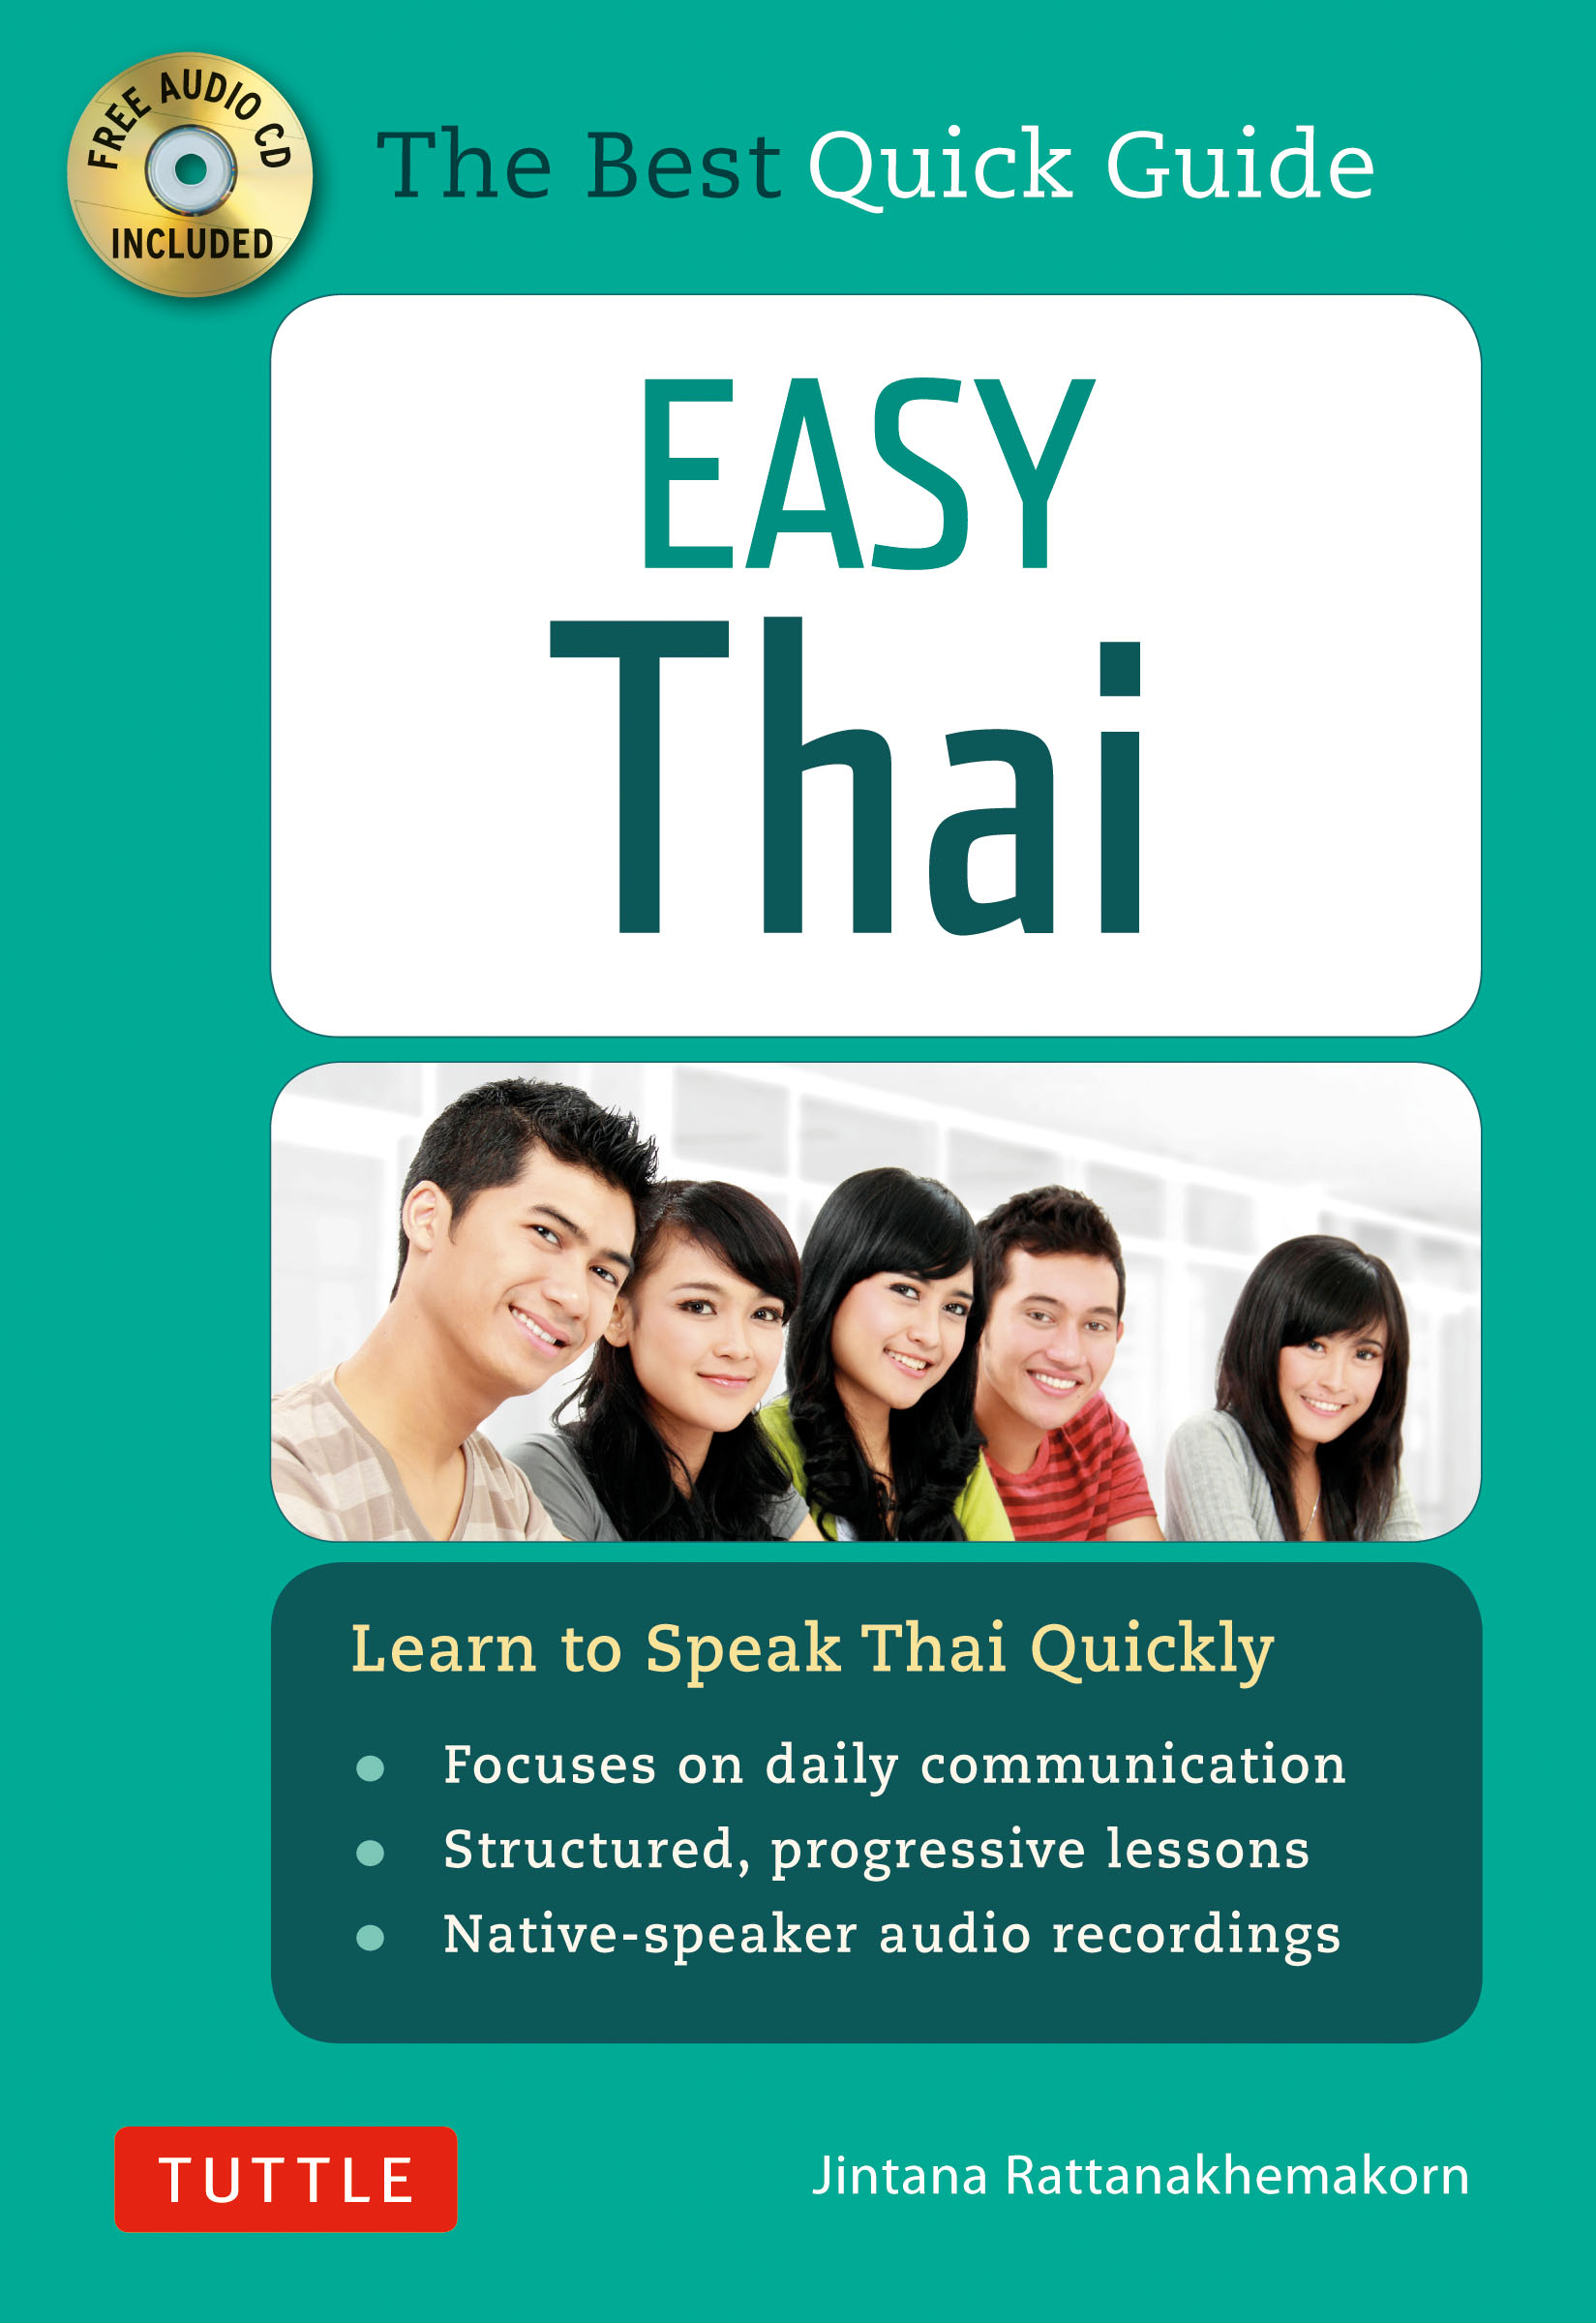 The Best Way to Learn How to Speak Thai - Live Fluent